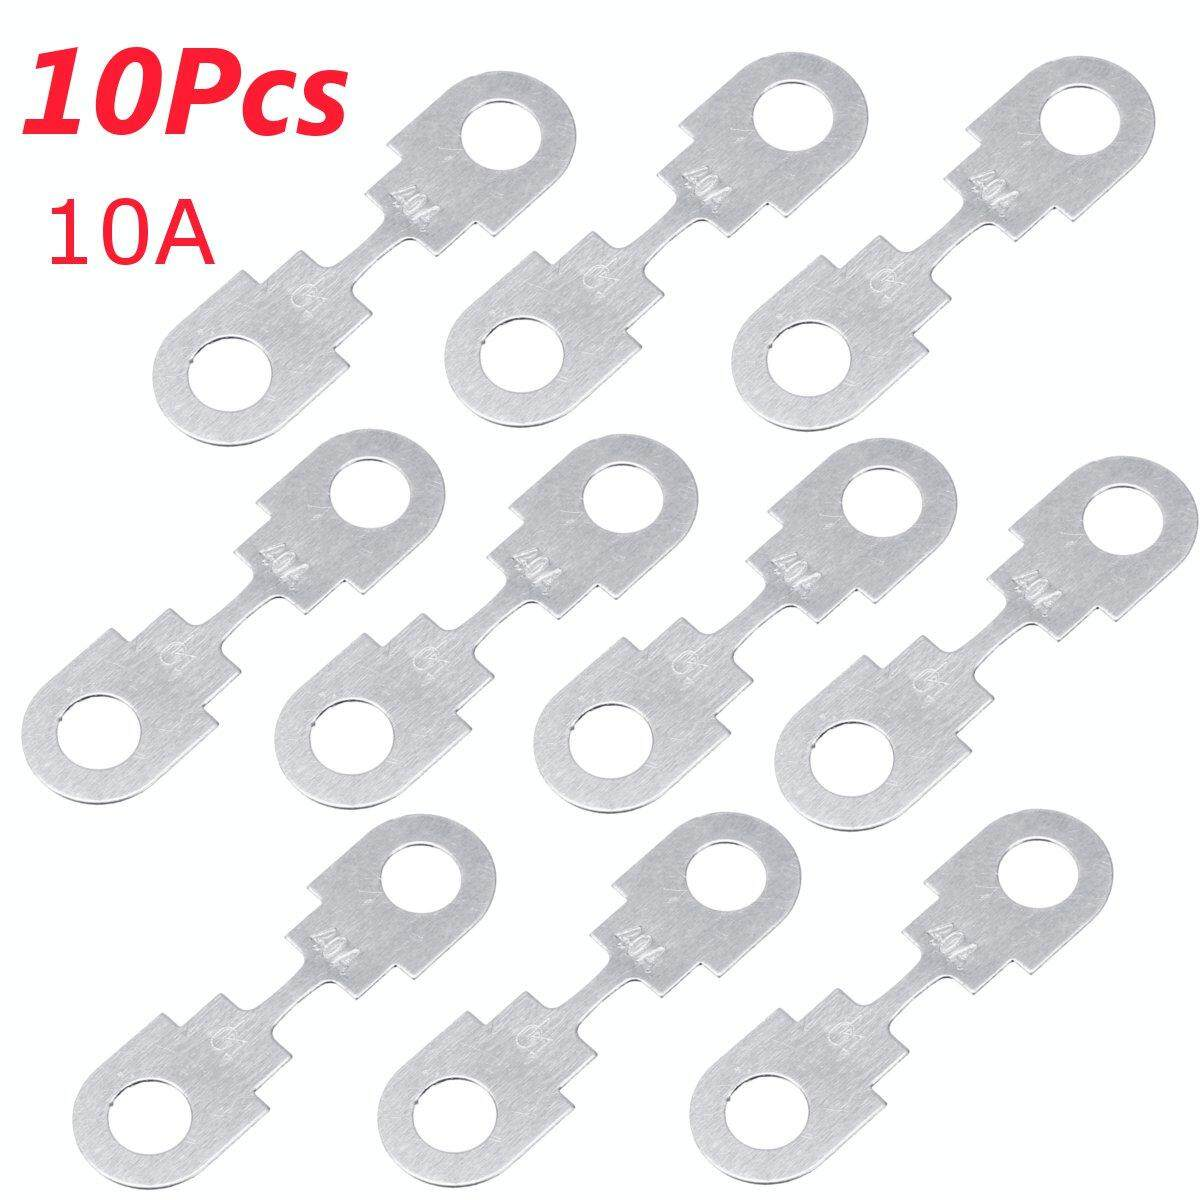 【free Shipping + Flash Deal】10pcs 12v 40a Silver Metal Fuse Strips Flat For Vw Audi Seat Ford By Freebang.